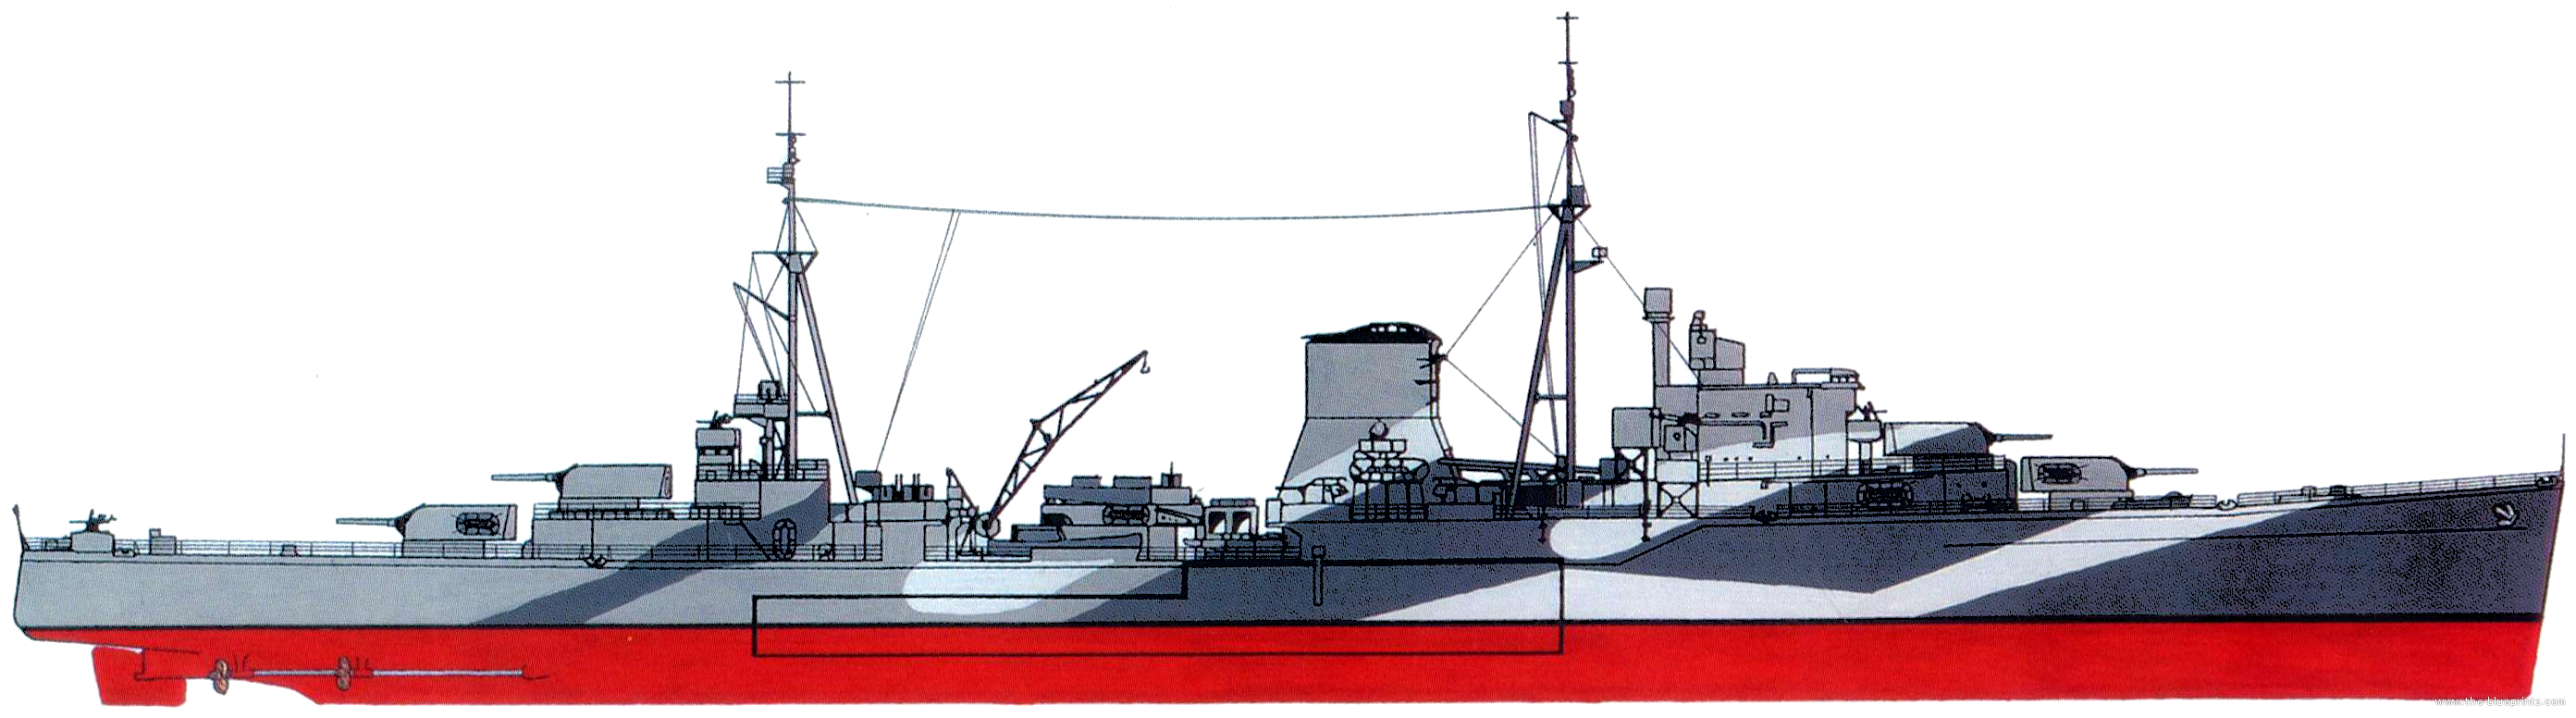 The-Blueprints.com - Blueprints > Ships > Ships (UK) > HMS Ajax [Light